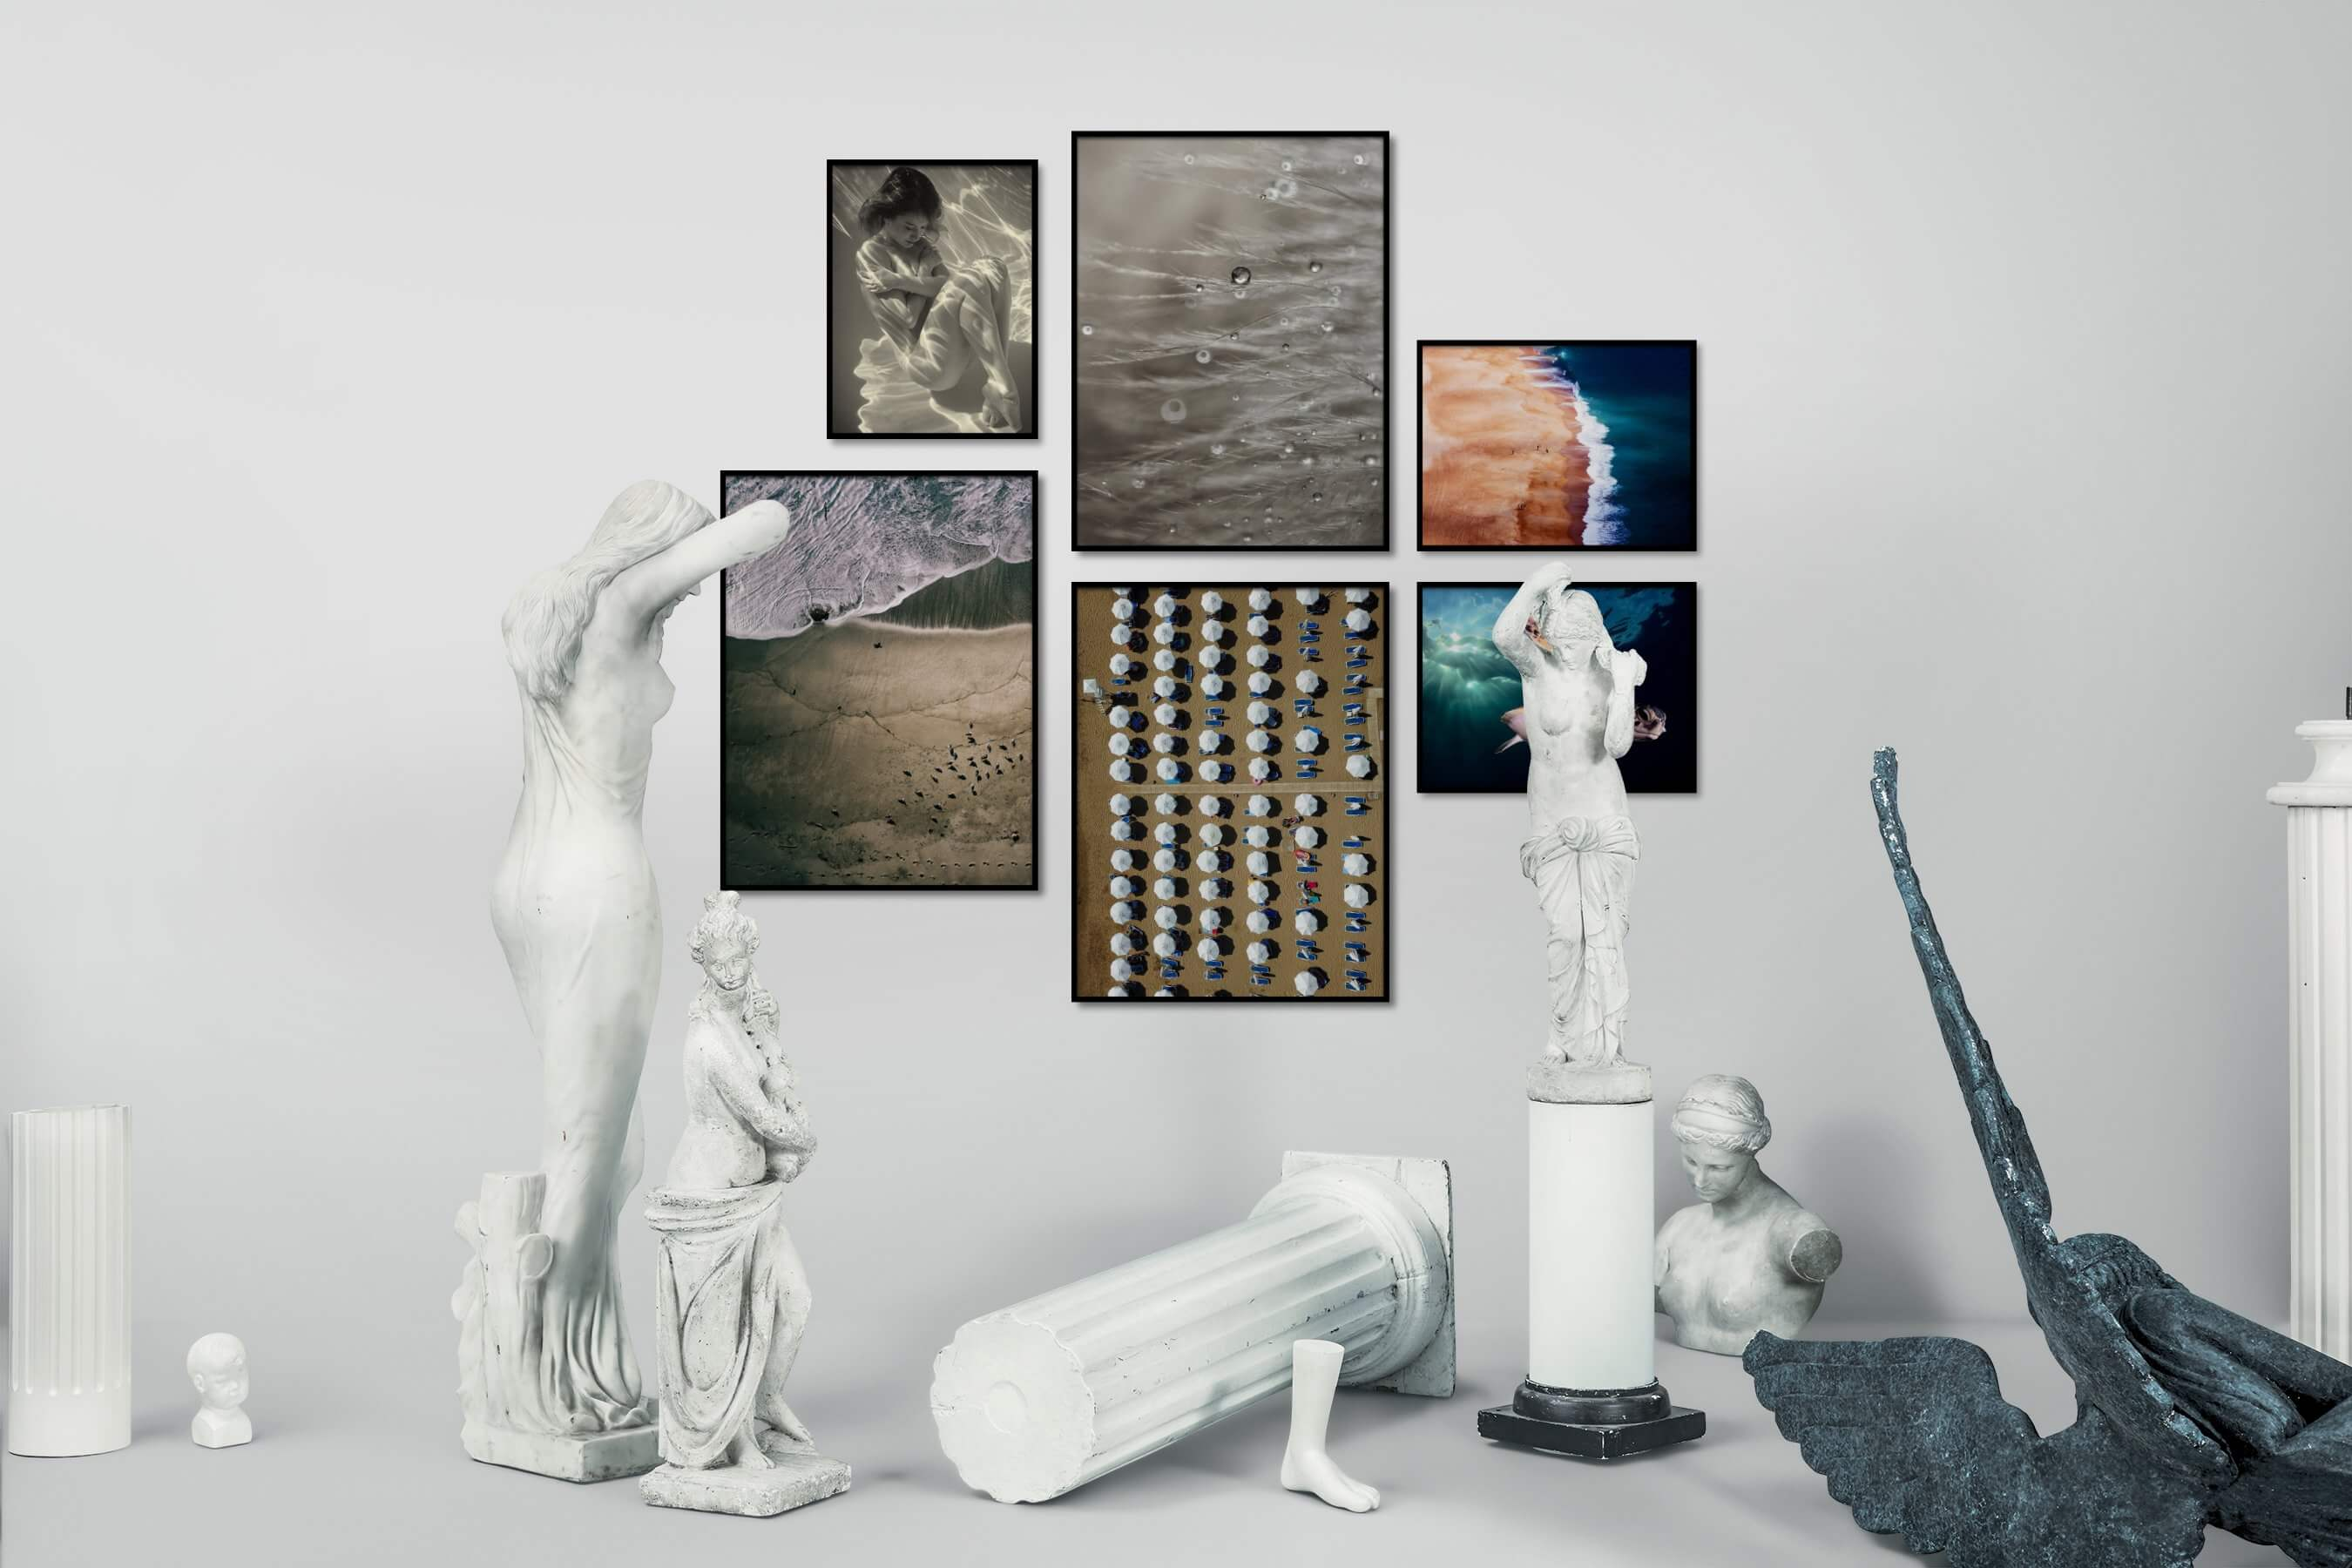 Gallery wall idea with six framed pictures arranged on a wall depicting Fashion & Beauty, Beach & Water, For the Moderate, Flowers & Plants, For the Maximalist, and Animals